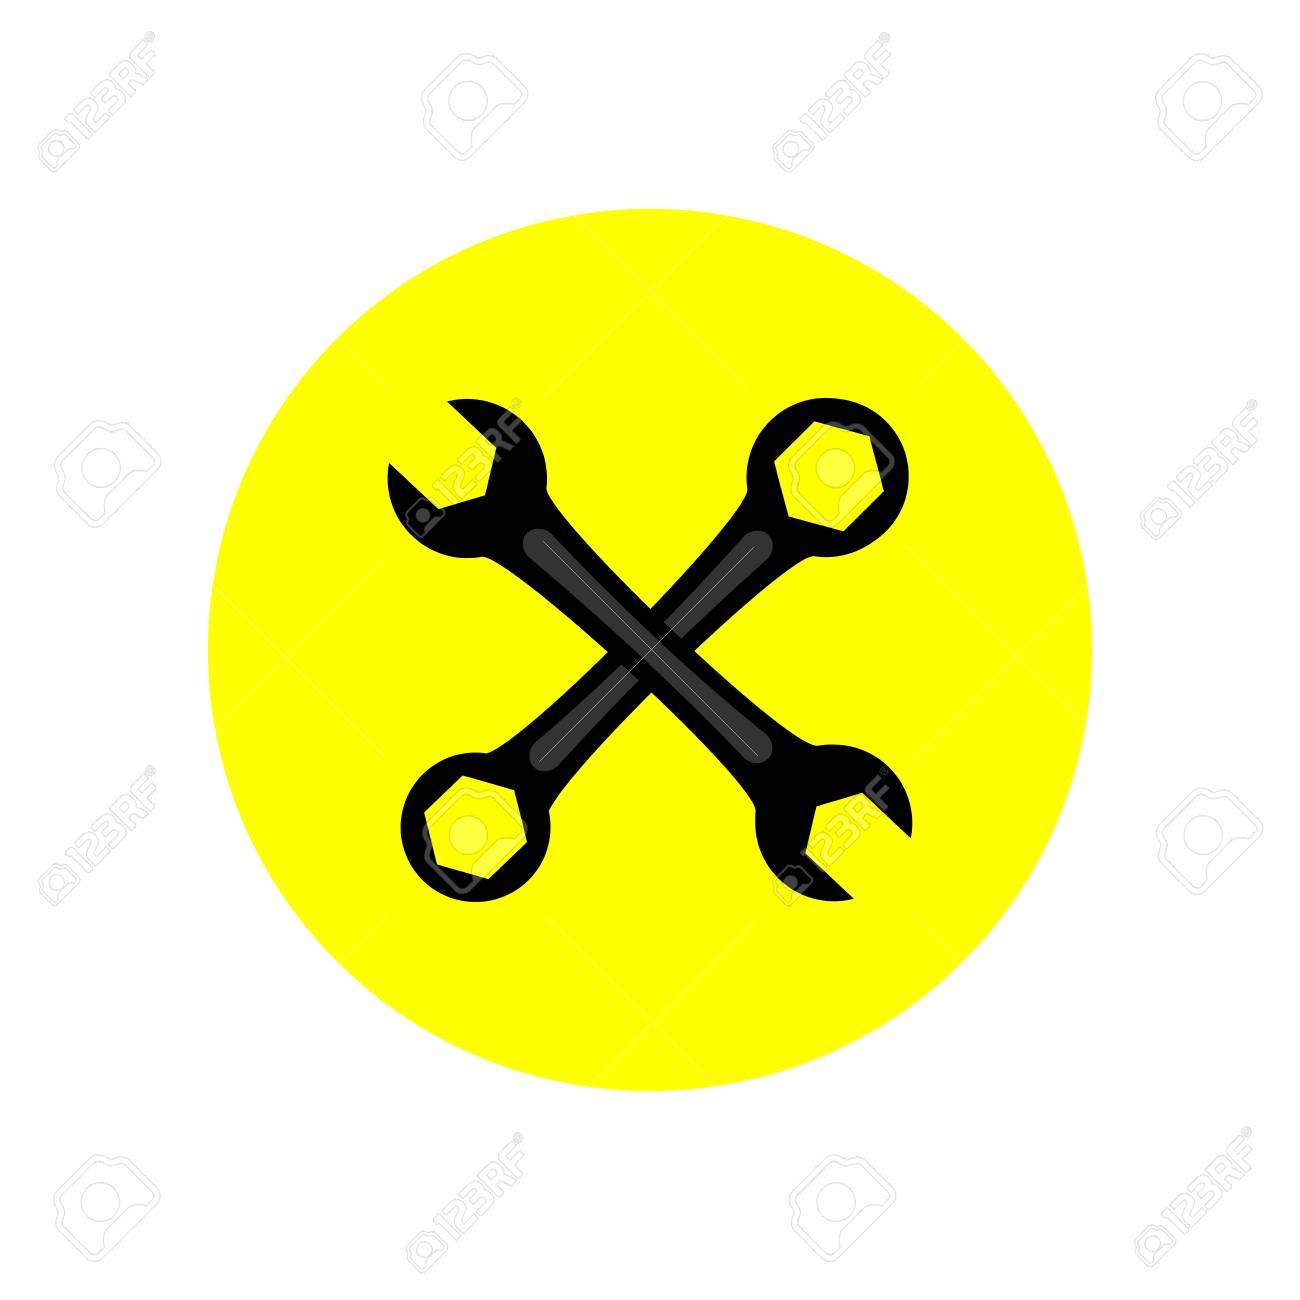 wrench icon in yellow circle vector illustration royalty free